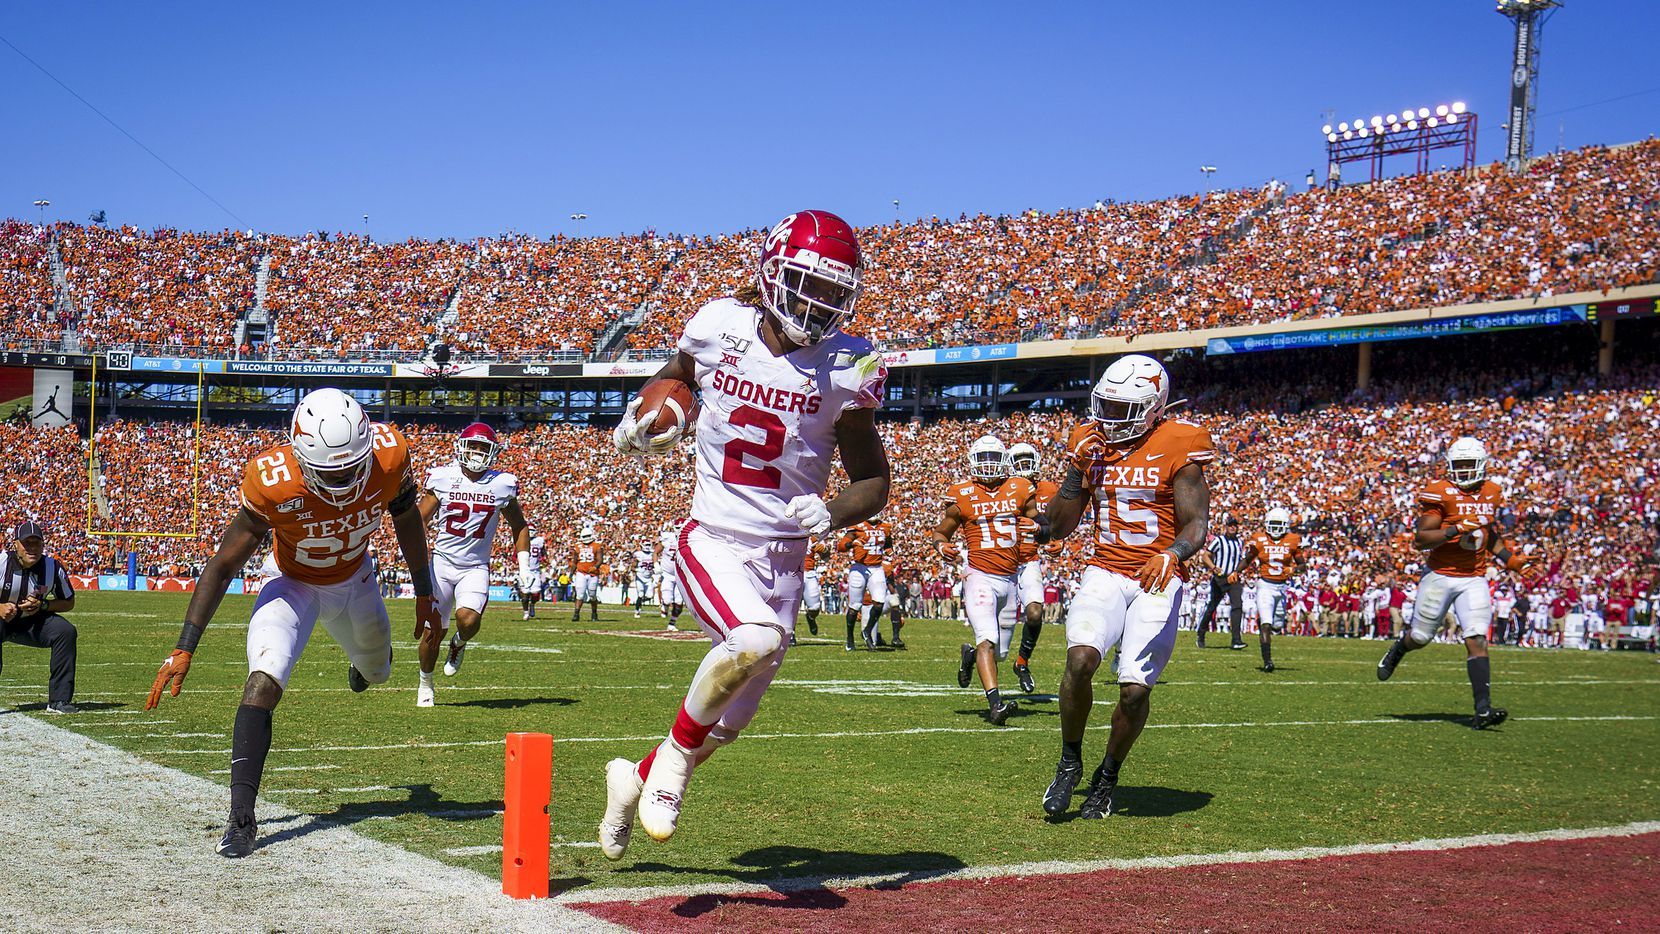 Oklahoma Football Schedule 2020.2020 Big 12 Football Schedules Unveiled Which Schools Got